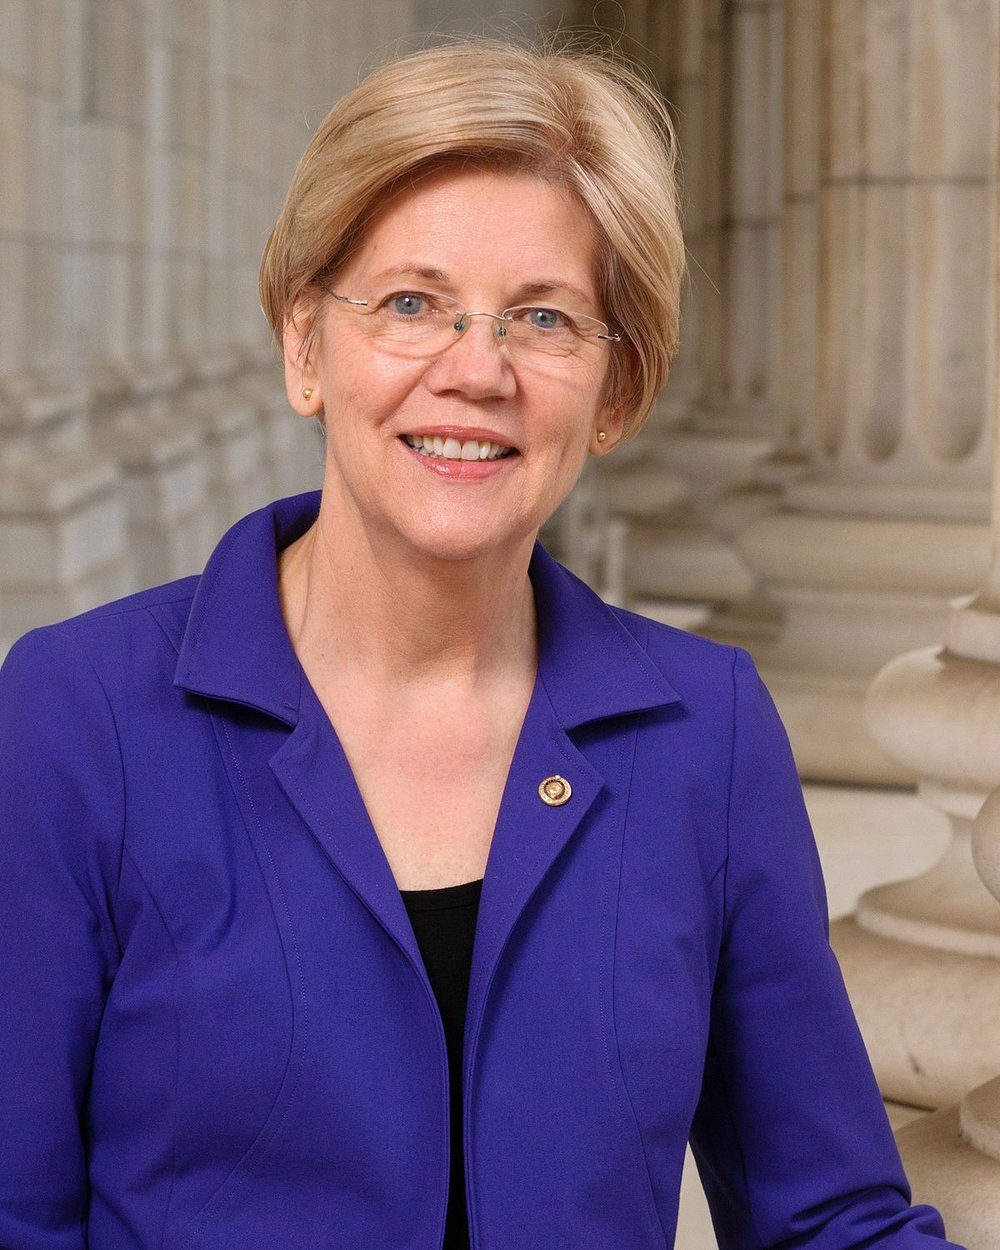 """Senator Elizabeth Warren   """"When I first met Sam, he was a young lawyer already making a name for himself in his advocacy for the rights of people with disabilities. In the decades since, he has become one of the nation's leading civil rights lawyers. Sam is hard-working and compassionate -- and fiercely committed to justice. In short, Sam Bagenstos is just the person we need to serve on our courts."""""""